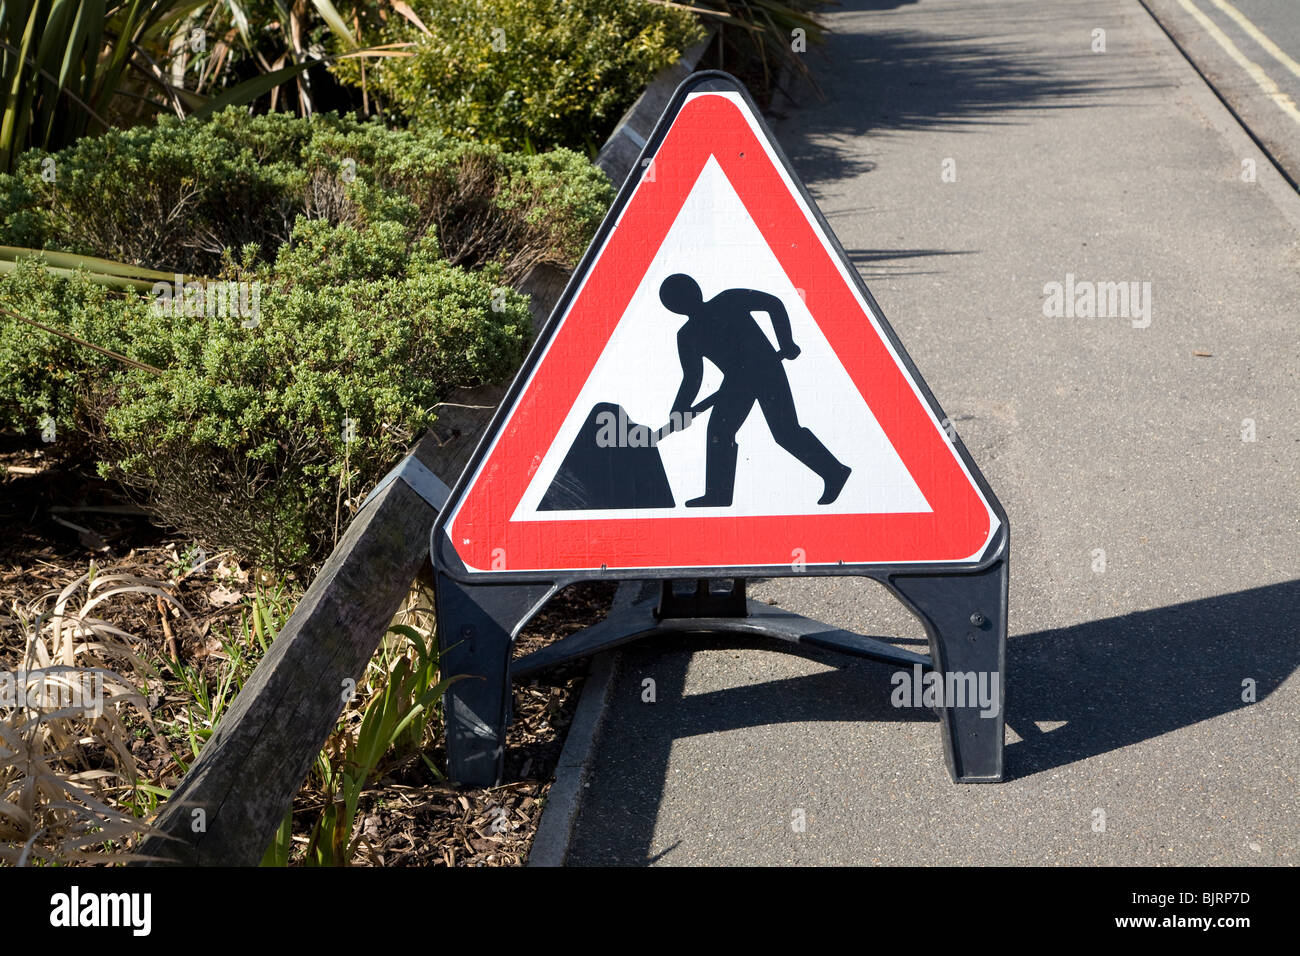 Man at work red triangular road sign - Stock Image